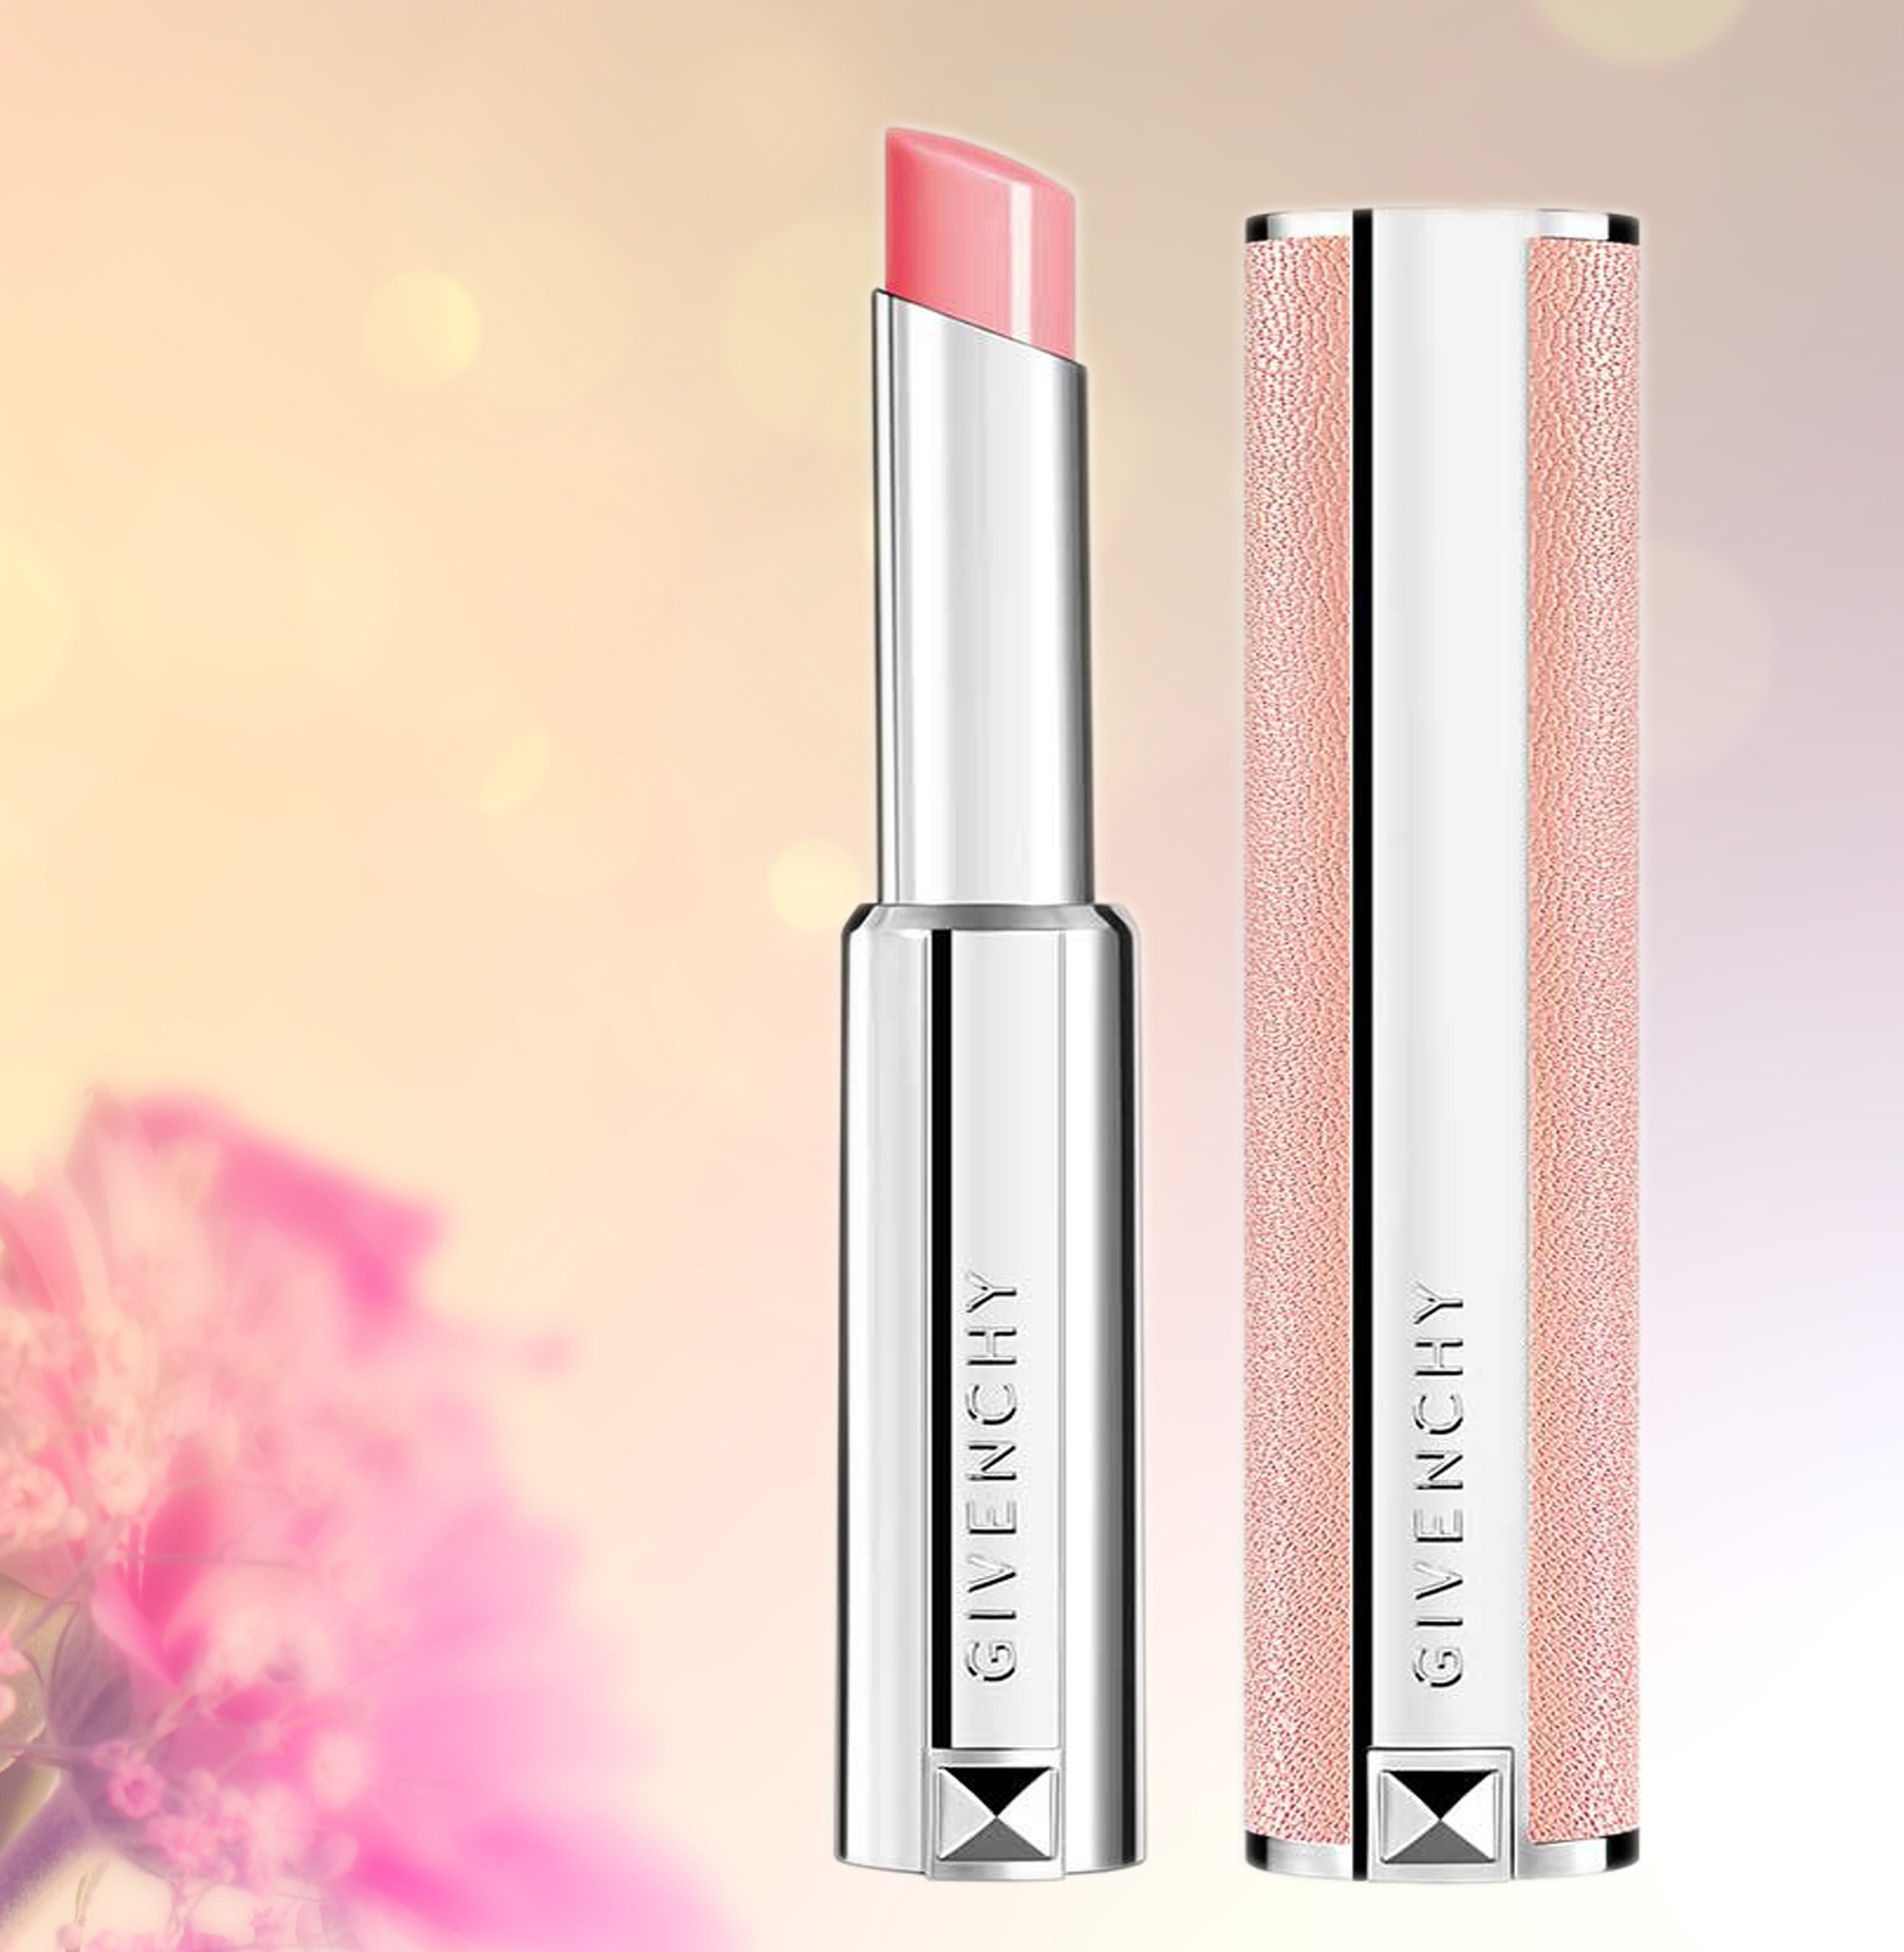 Le Rouge Perfecto in Perfect Pink